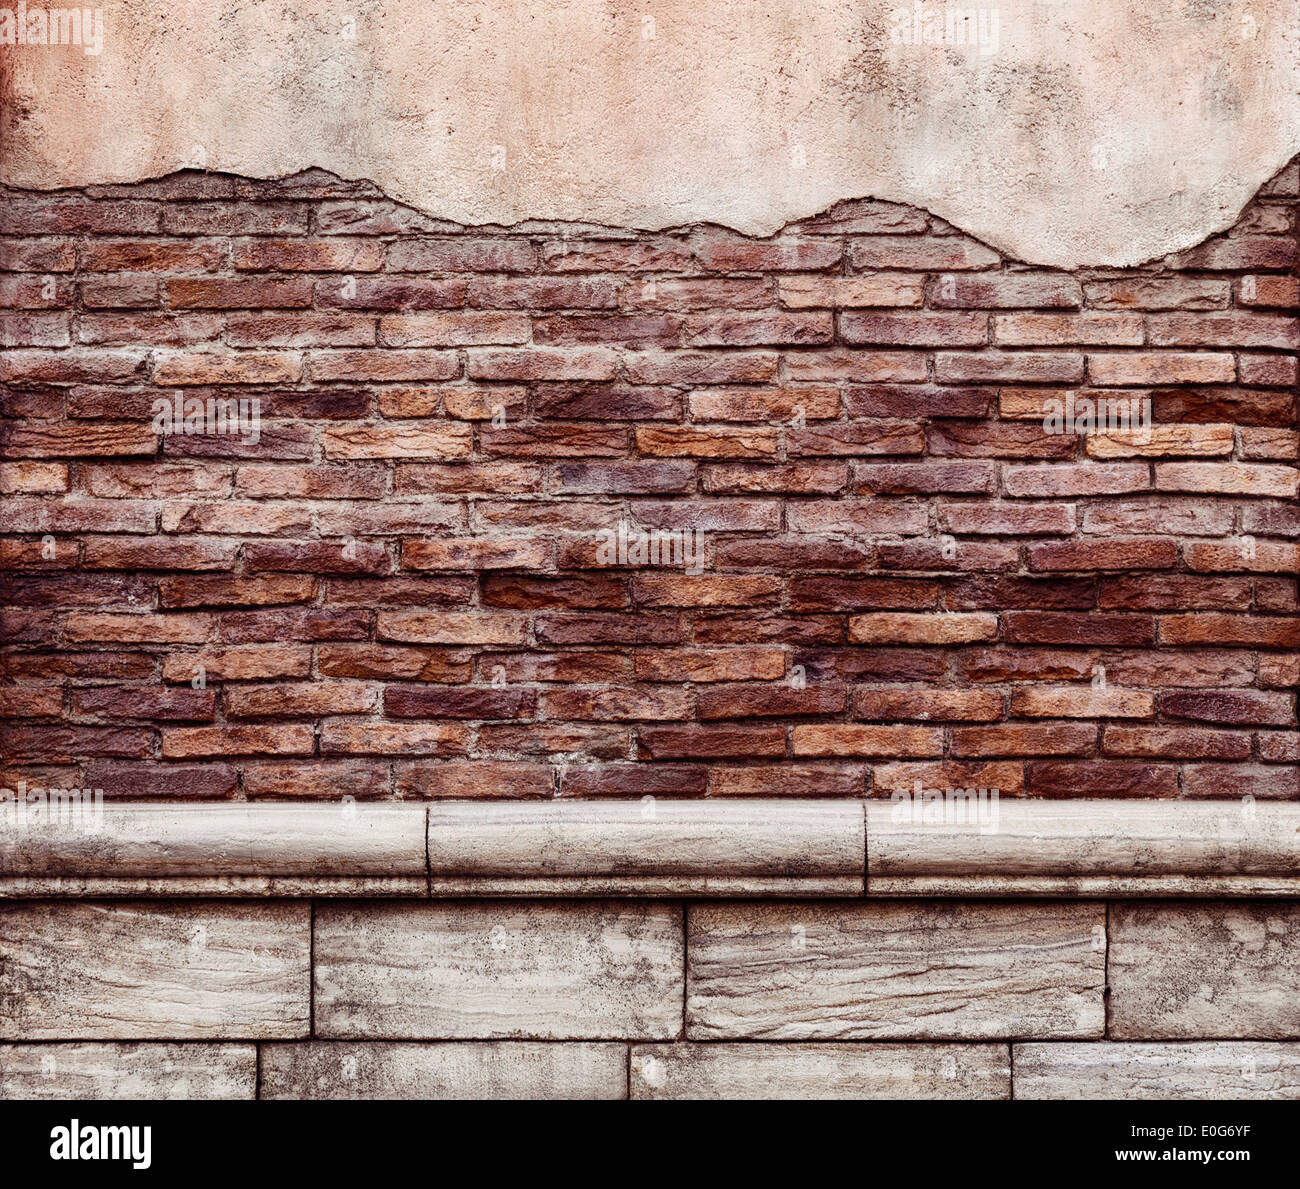 Old grungy brick wall with peeled off stucco rustic texture background - Stock Image